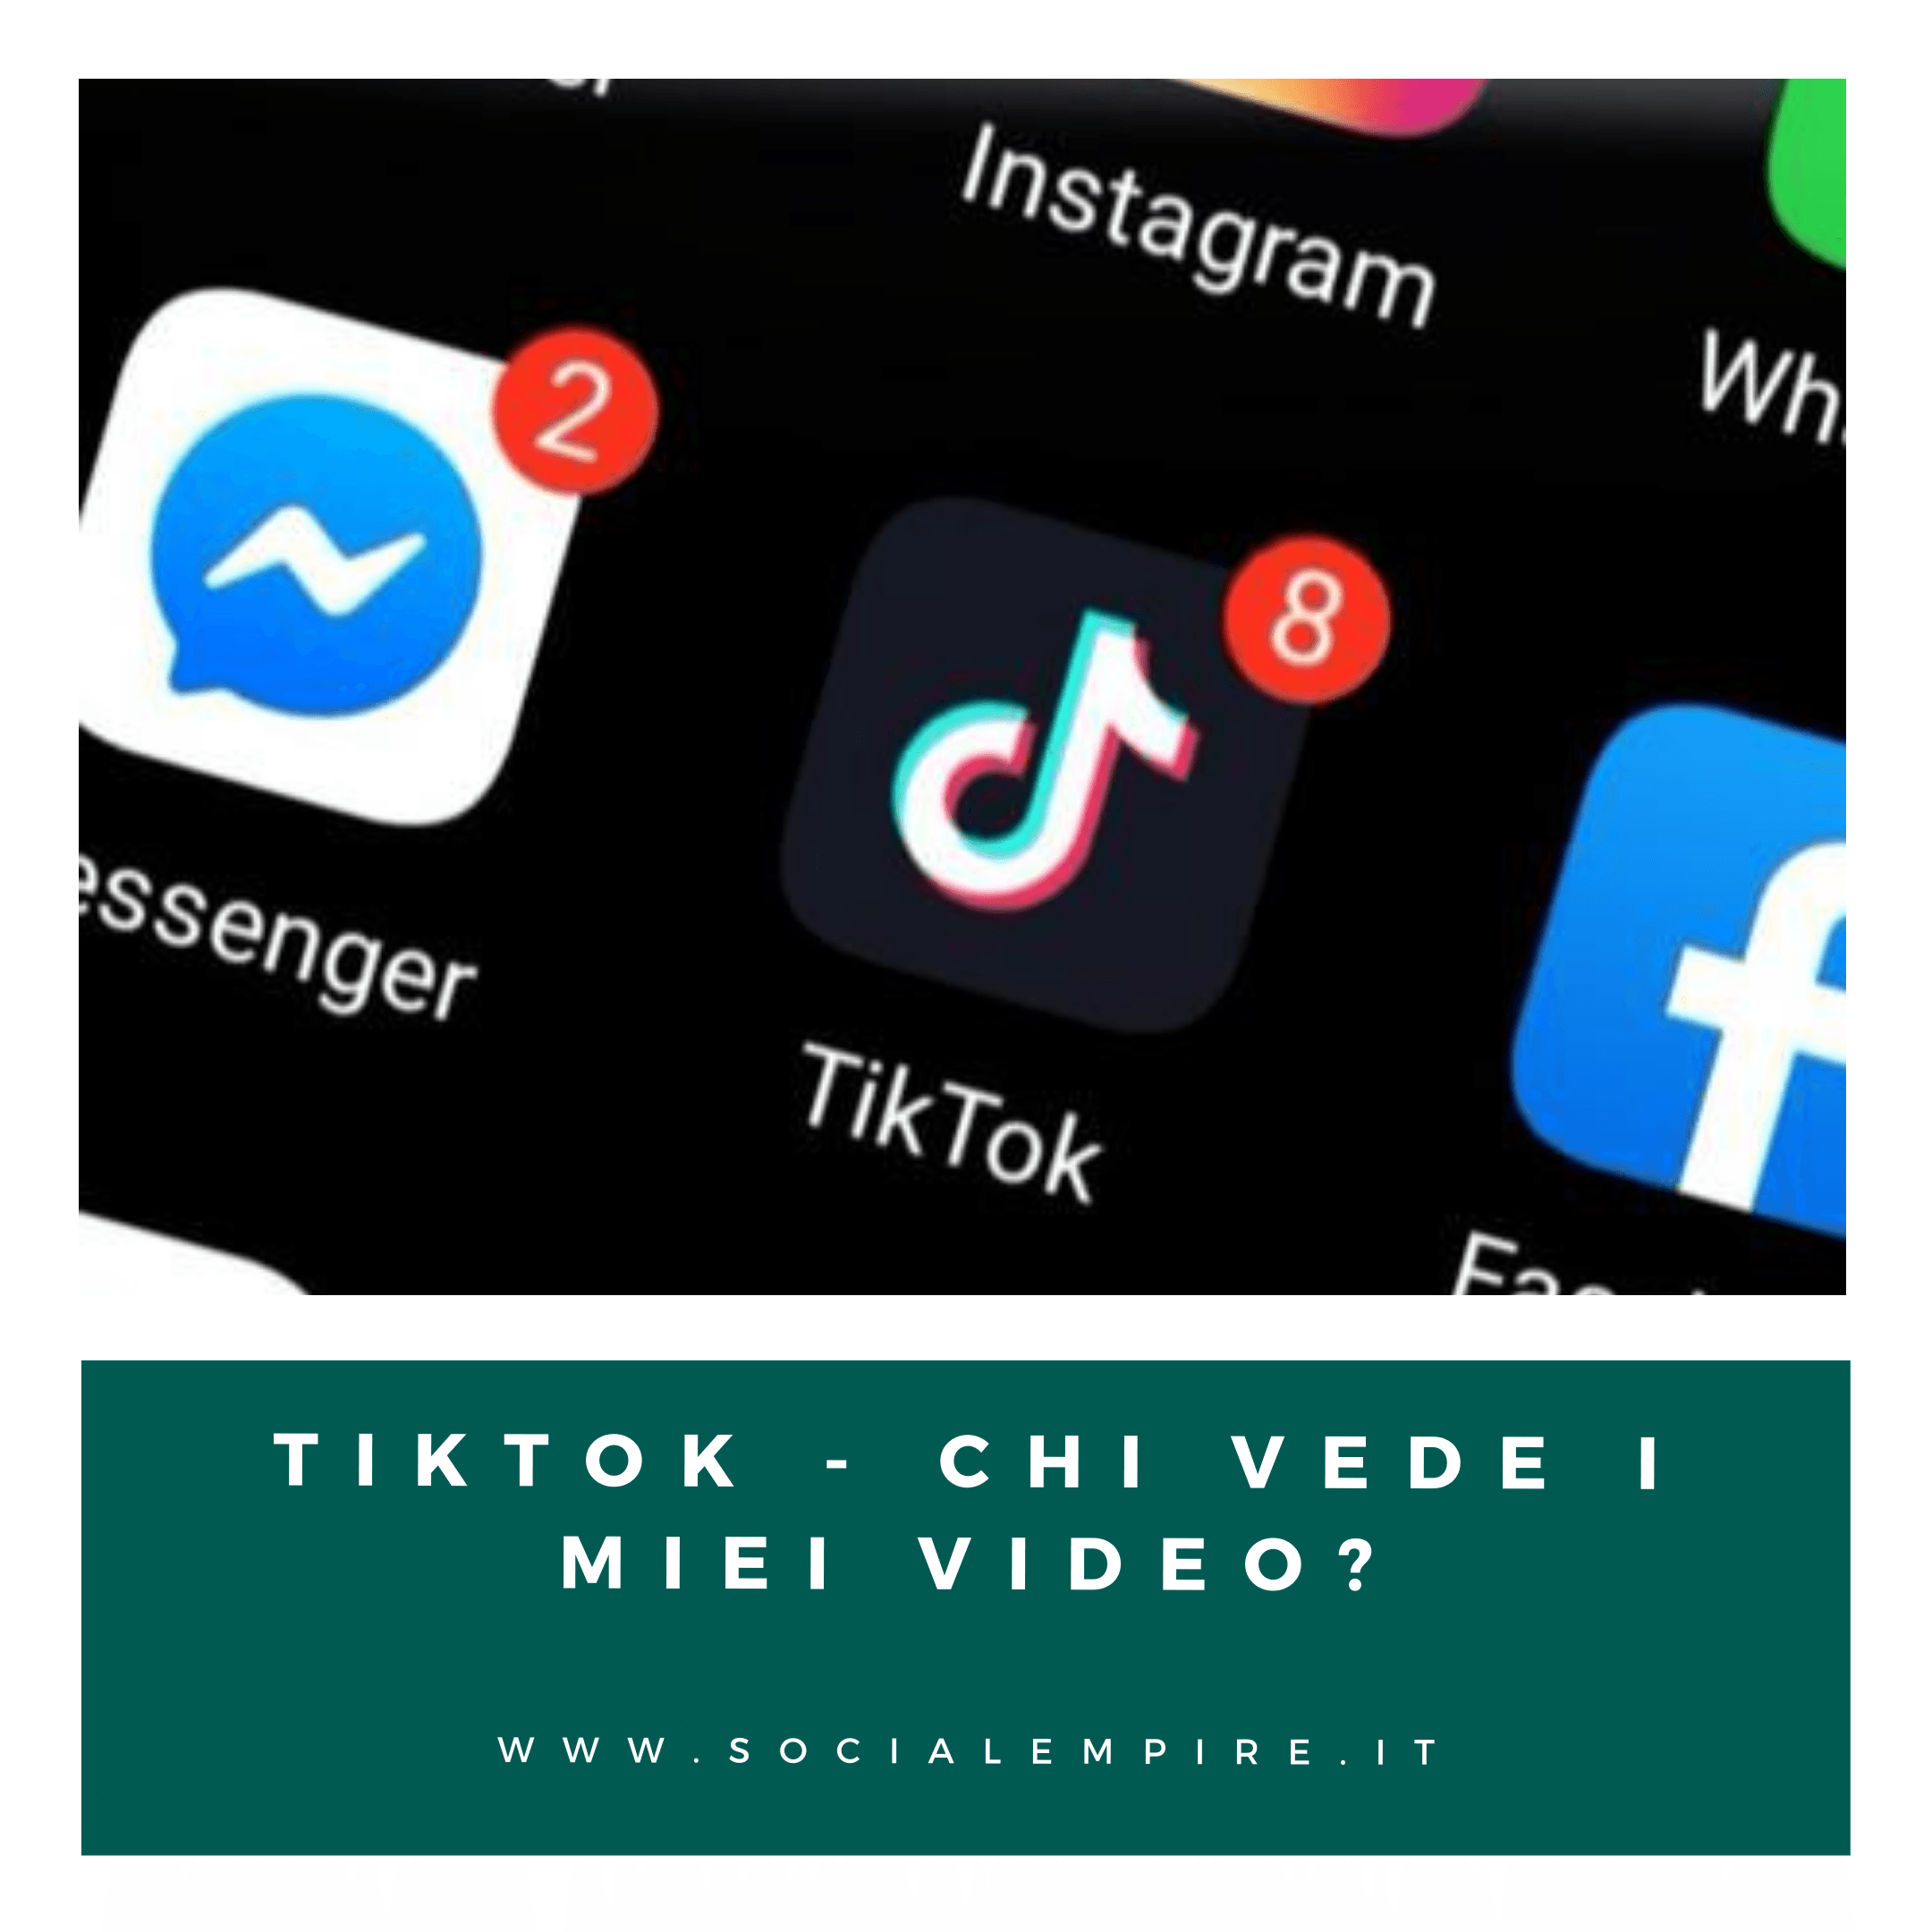 tiktok chi vede i miei video